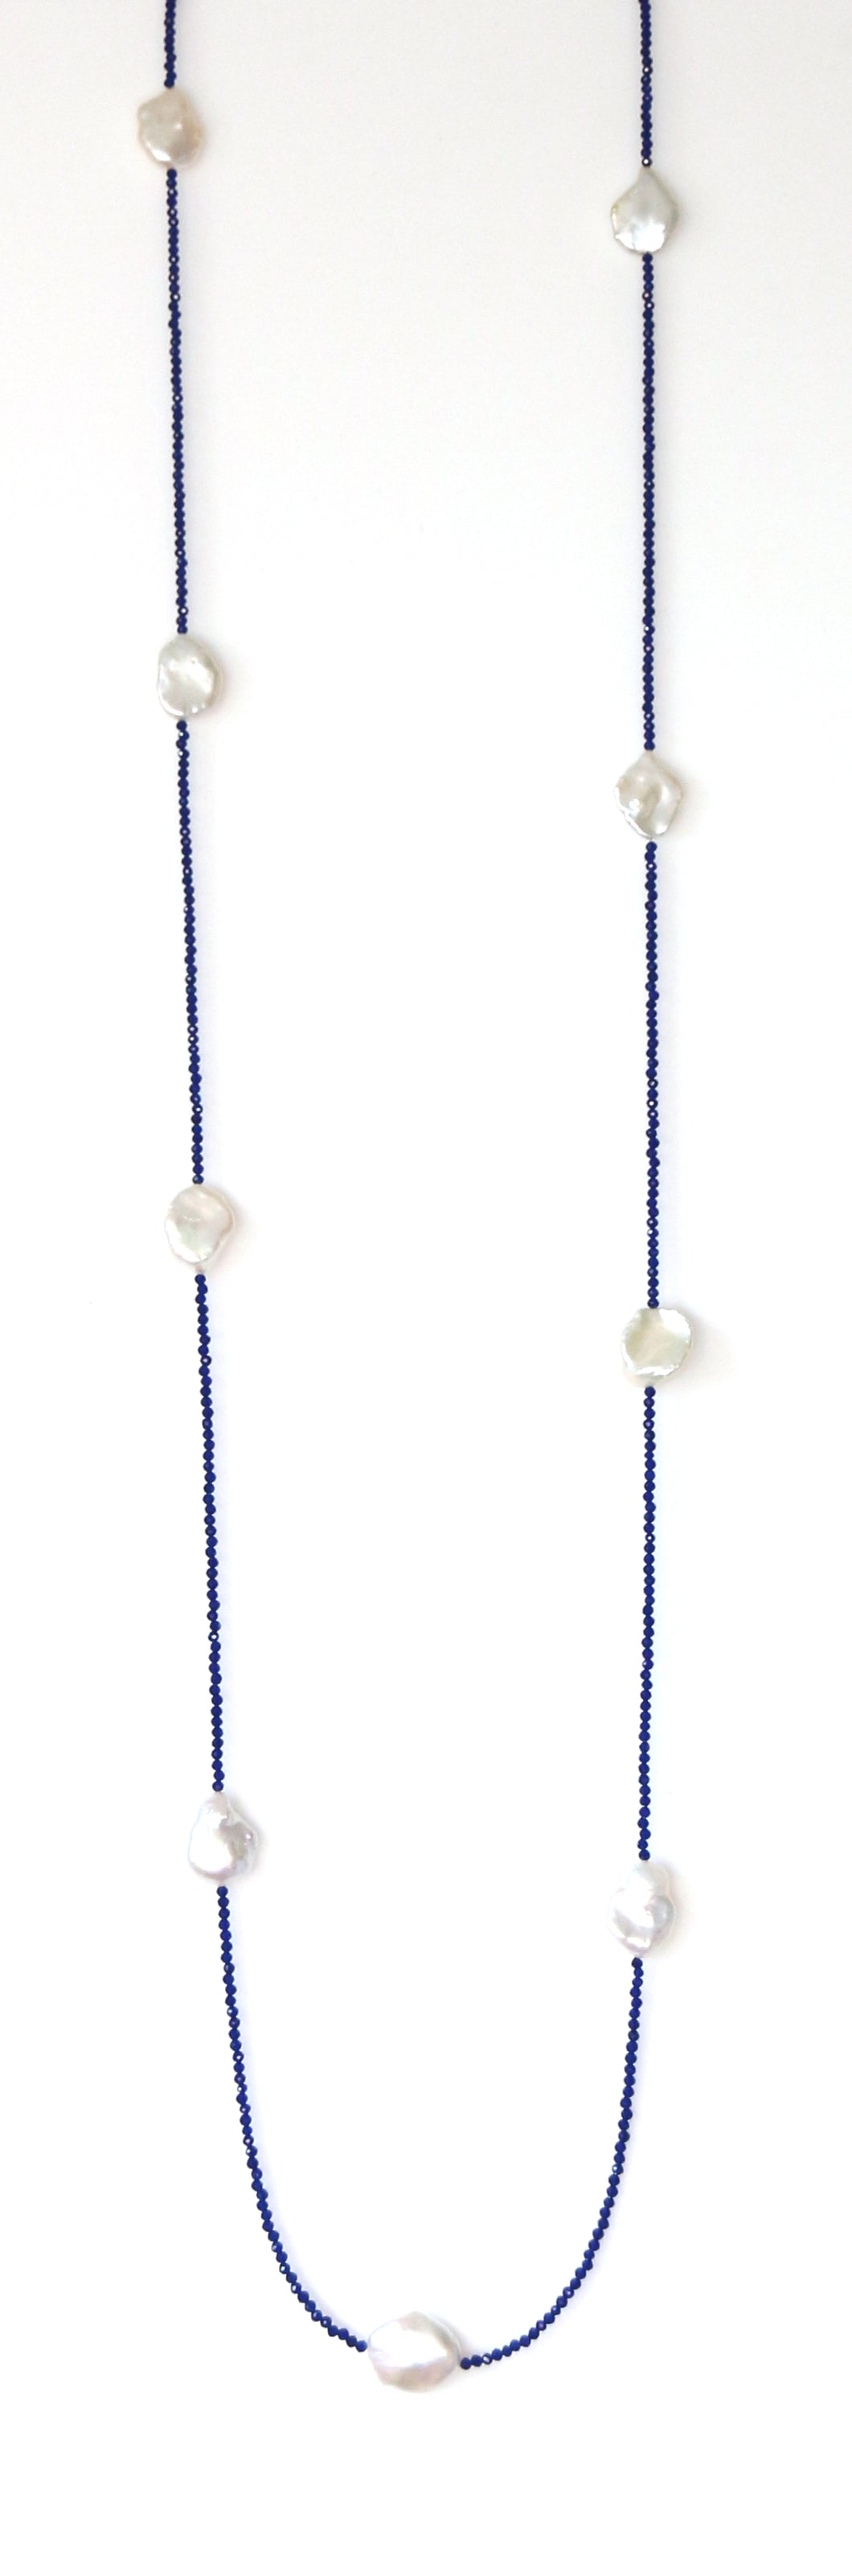 Australian Handmade Blue Lapis Lazuli Necklace with Baroque Pearls